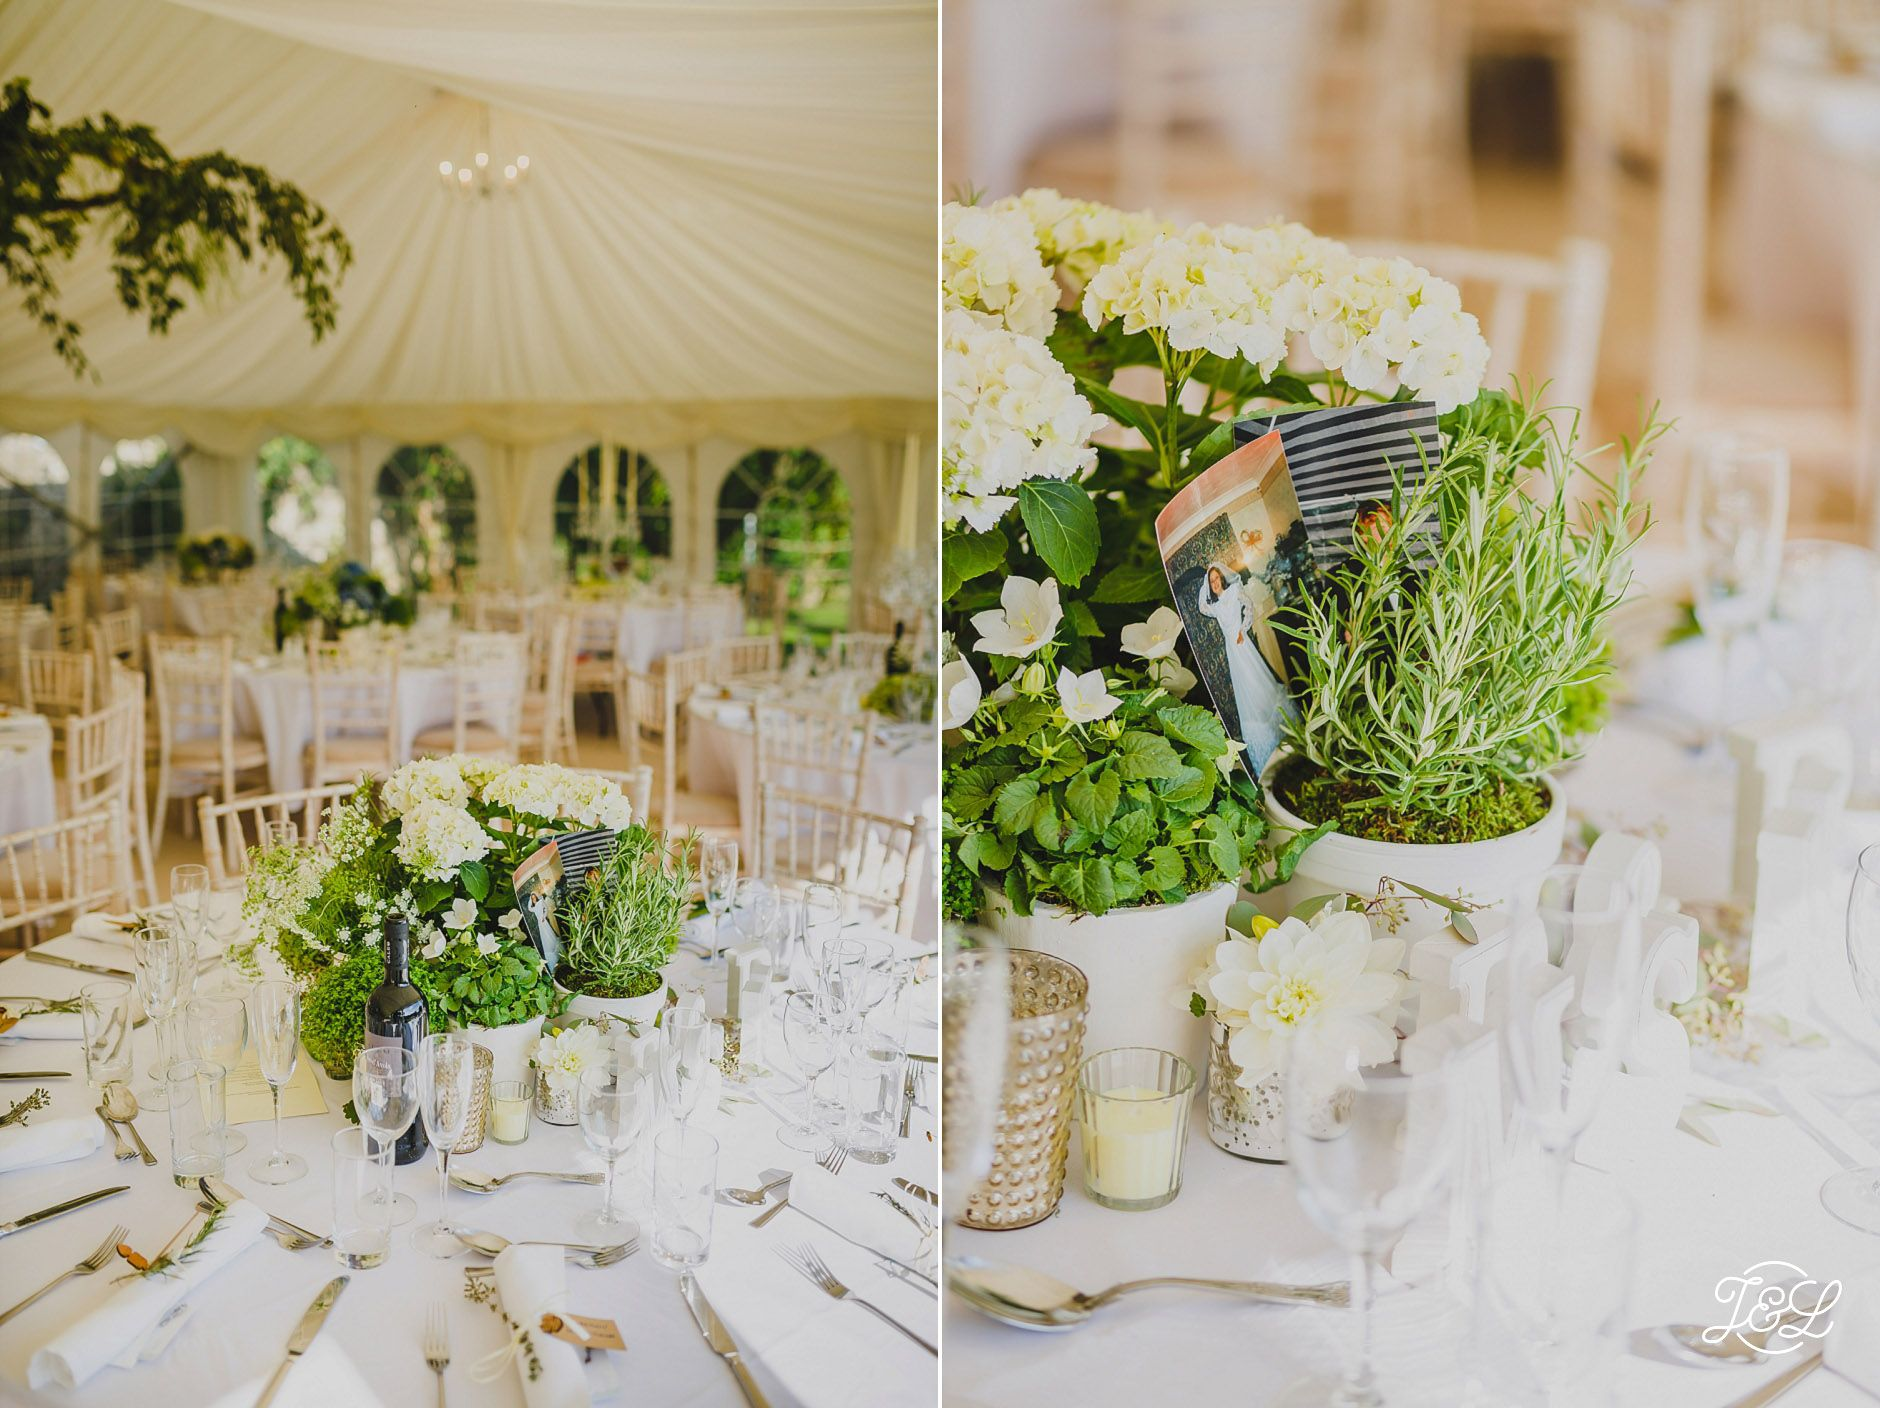 Wedding Venue Set Up Elegant White Clic Pretty With Lovely Green Flower Arrangements Near Marmion Tower English Heritage Site